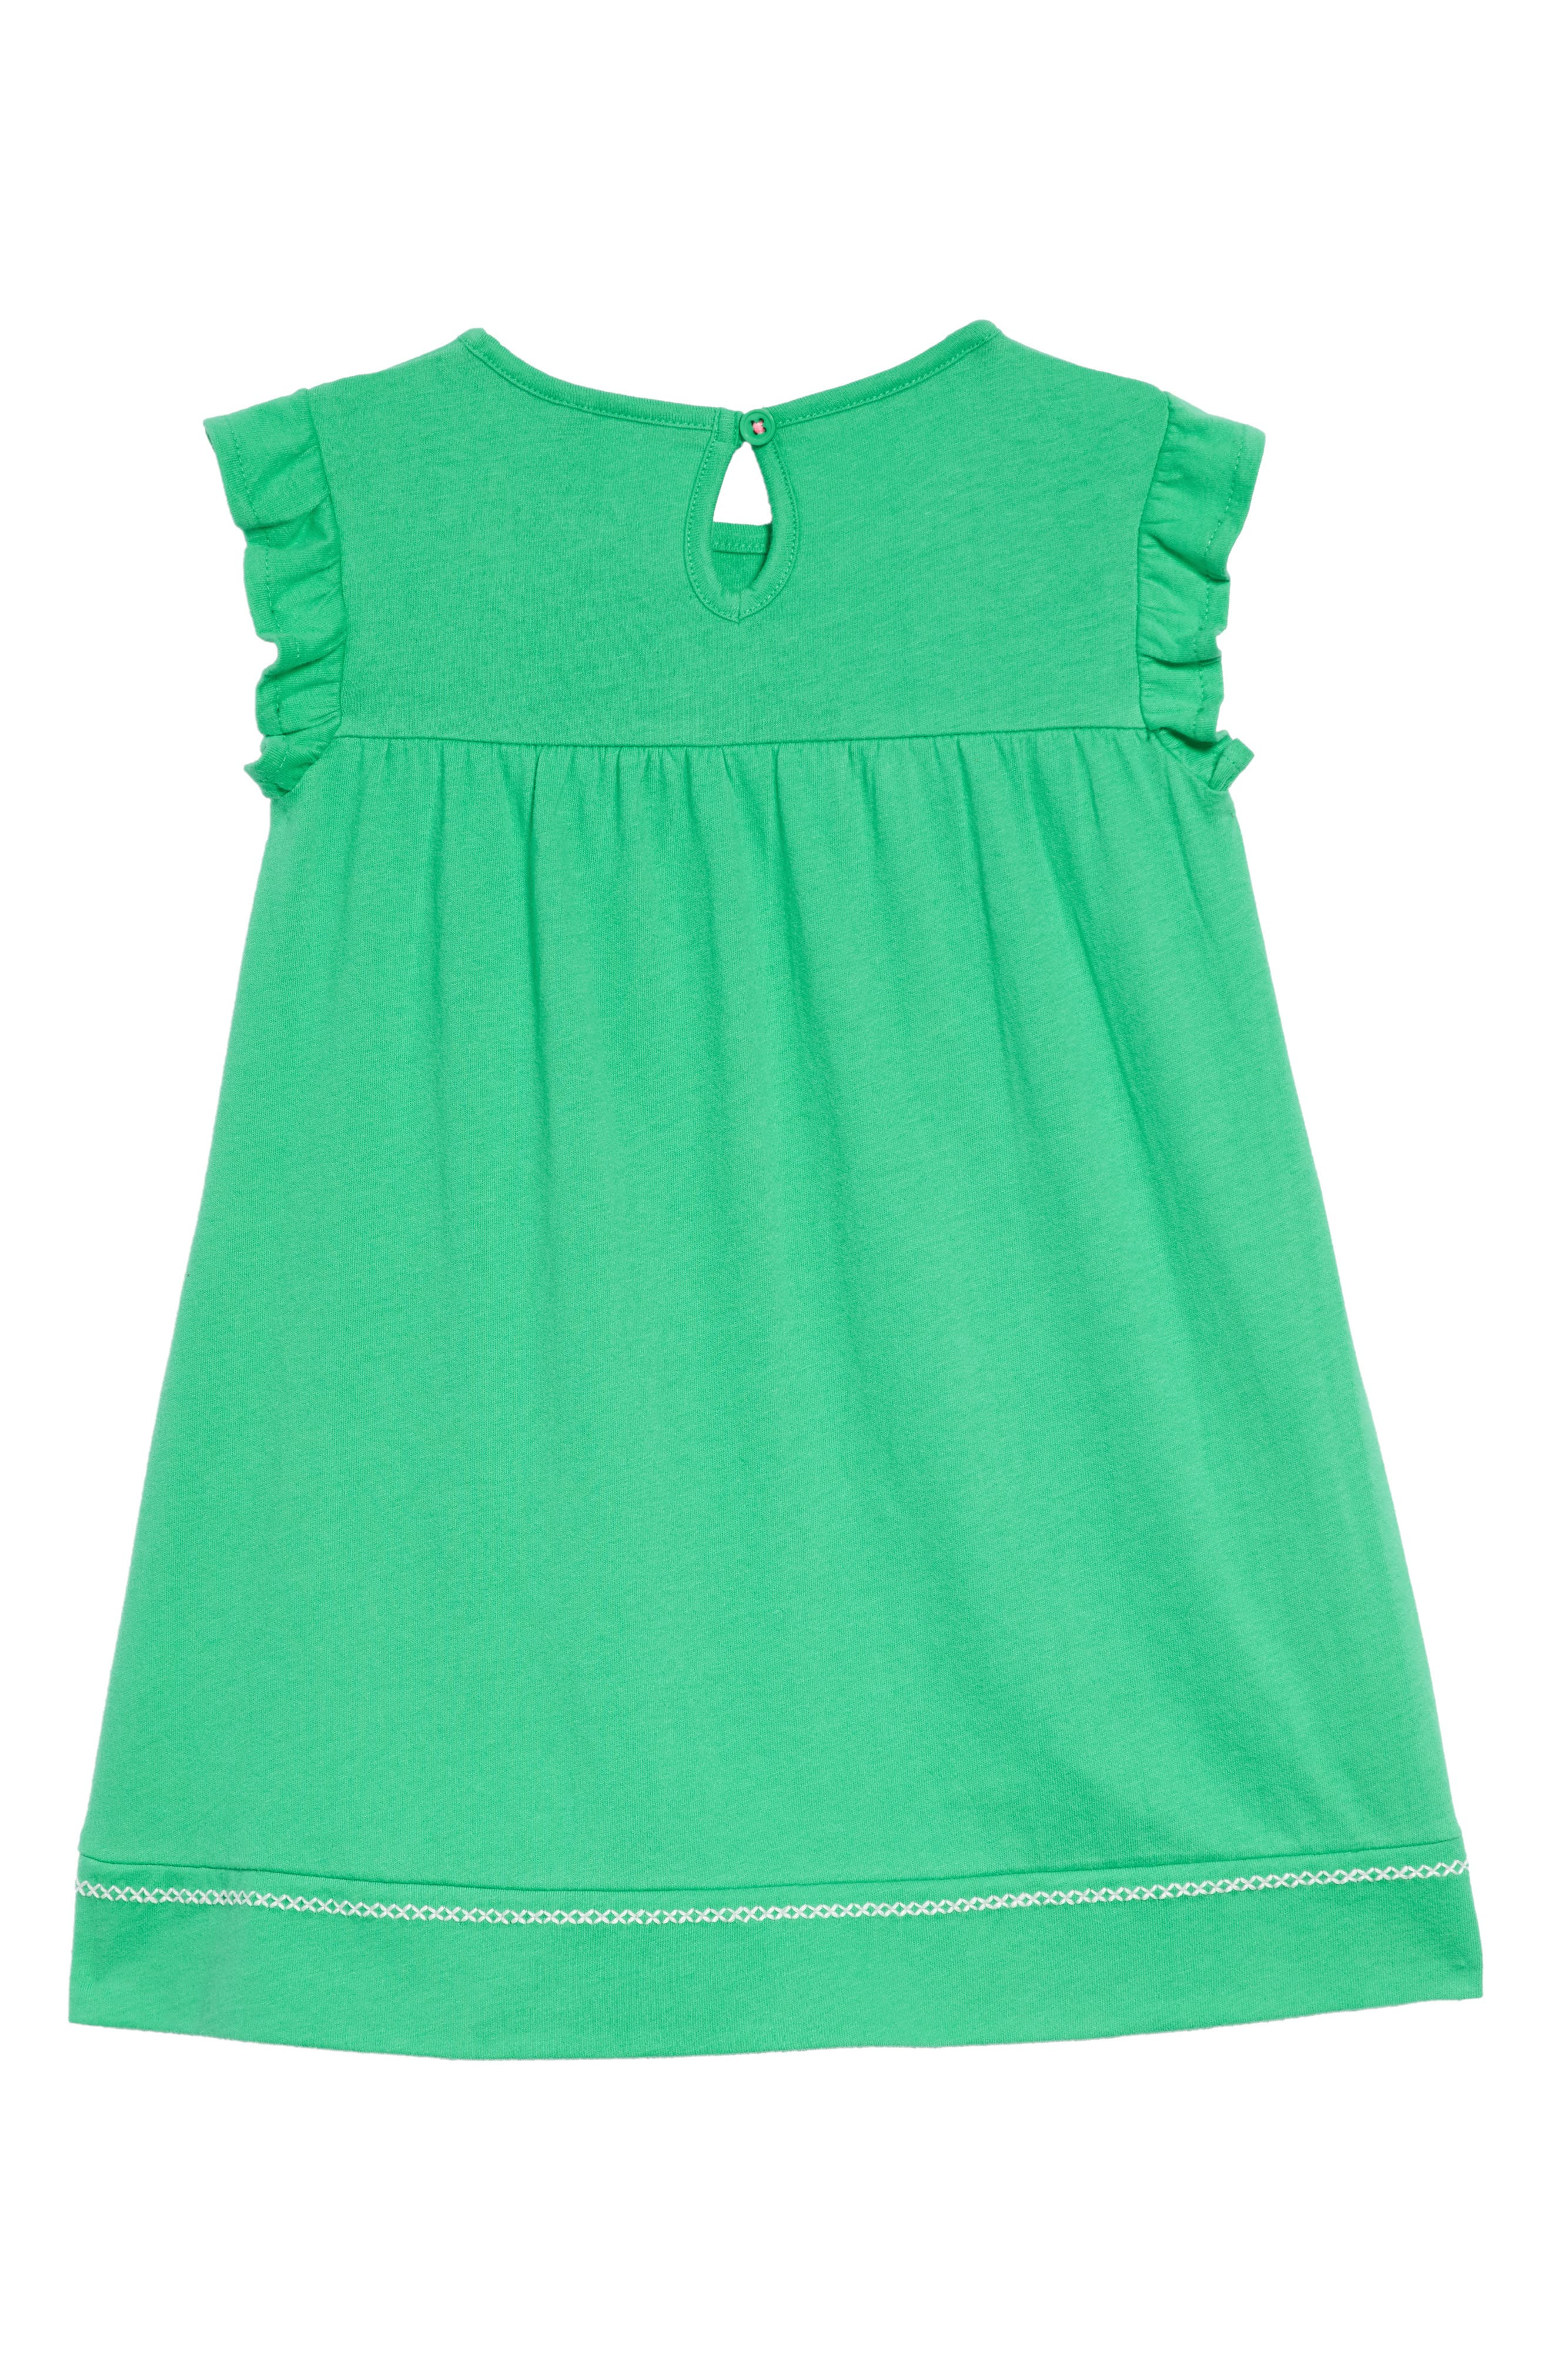 Embroidered Jersey Dress,                             Alternate thumbnail 3, color,                             Peppermint Green